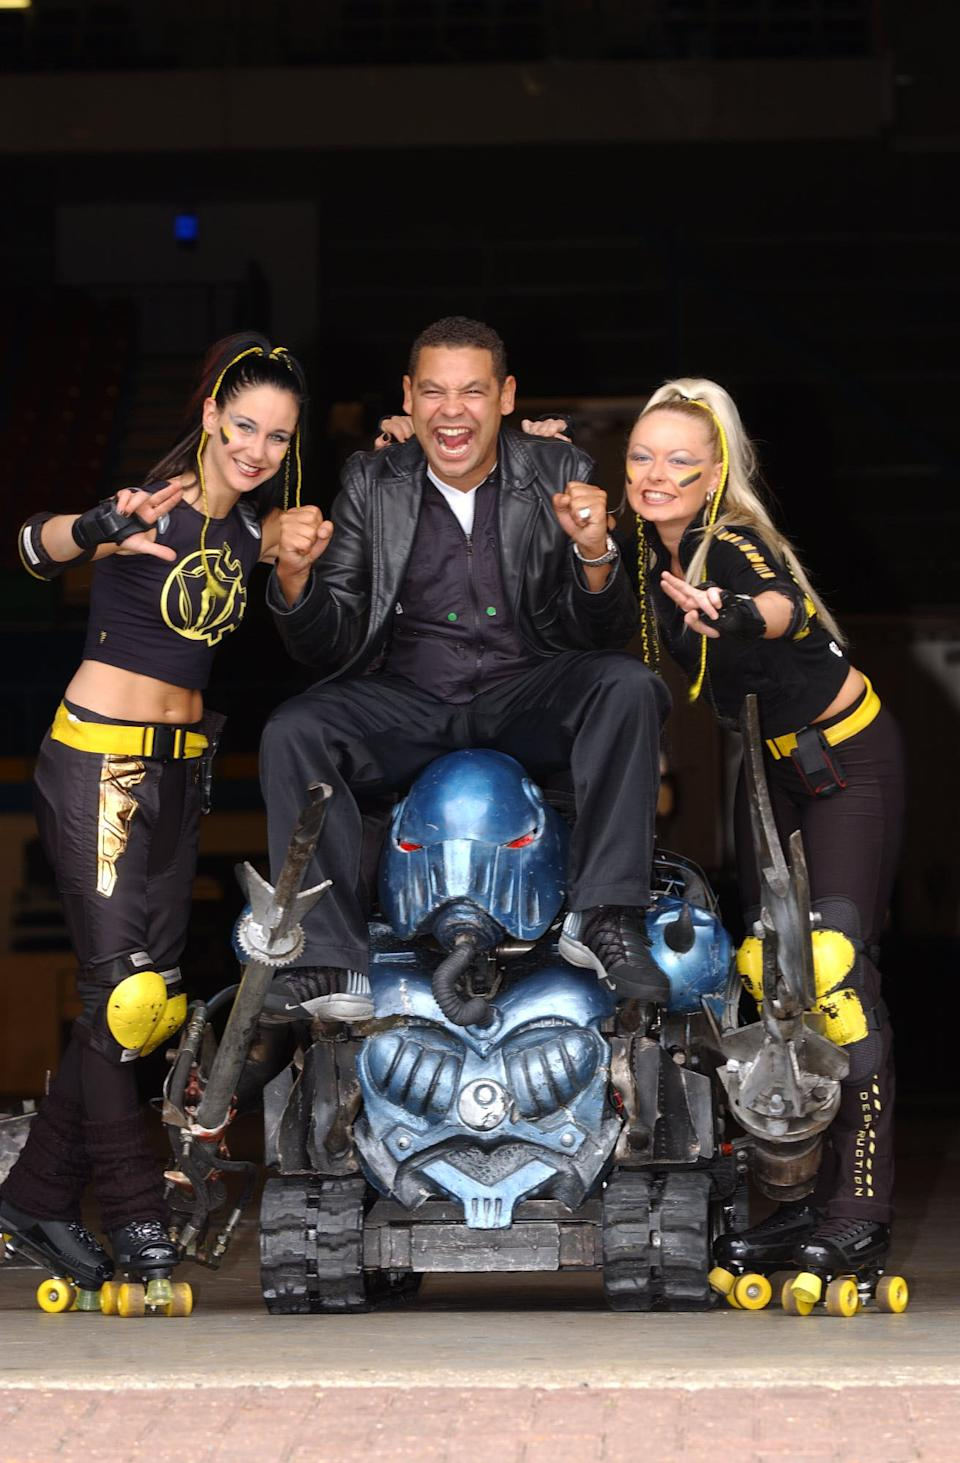 Robobabes Emily Vincent and Kelly Allen with presenter Craig Charles and the house robots promoting The Robot Wars Live Event, taking place at the London Arena and at the Wembley Arena.